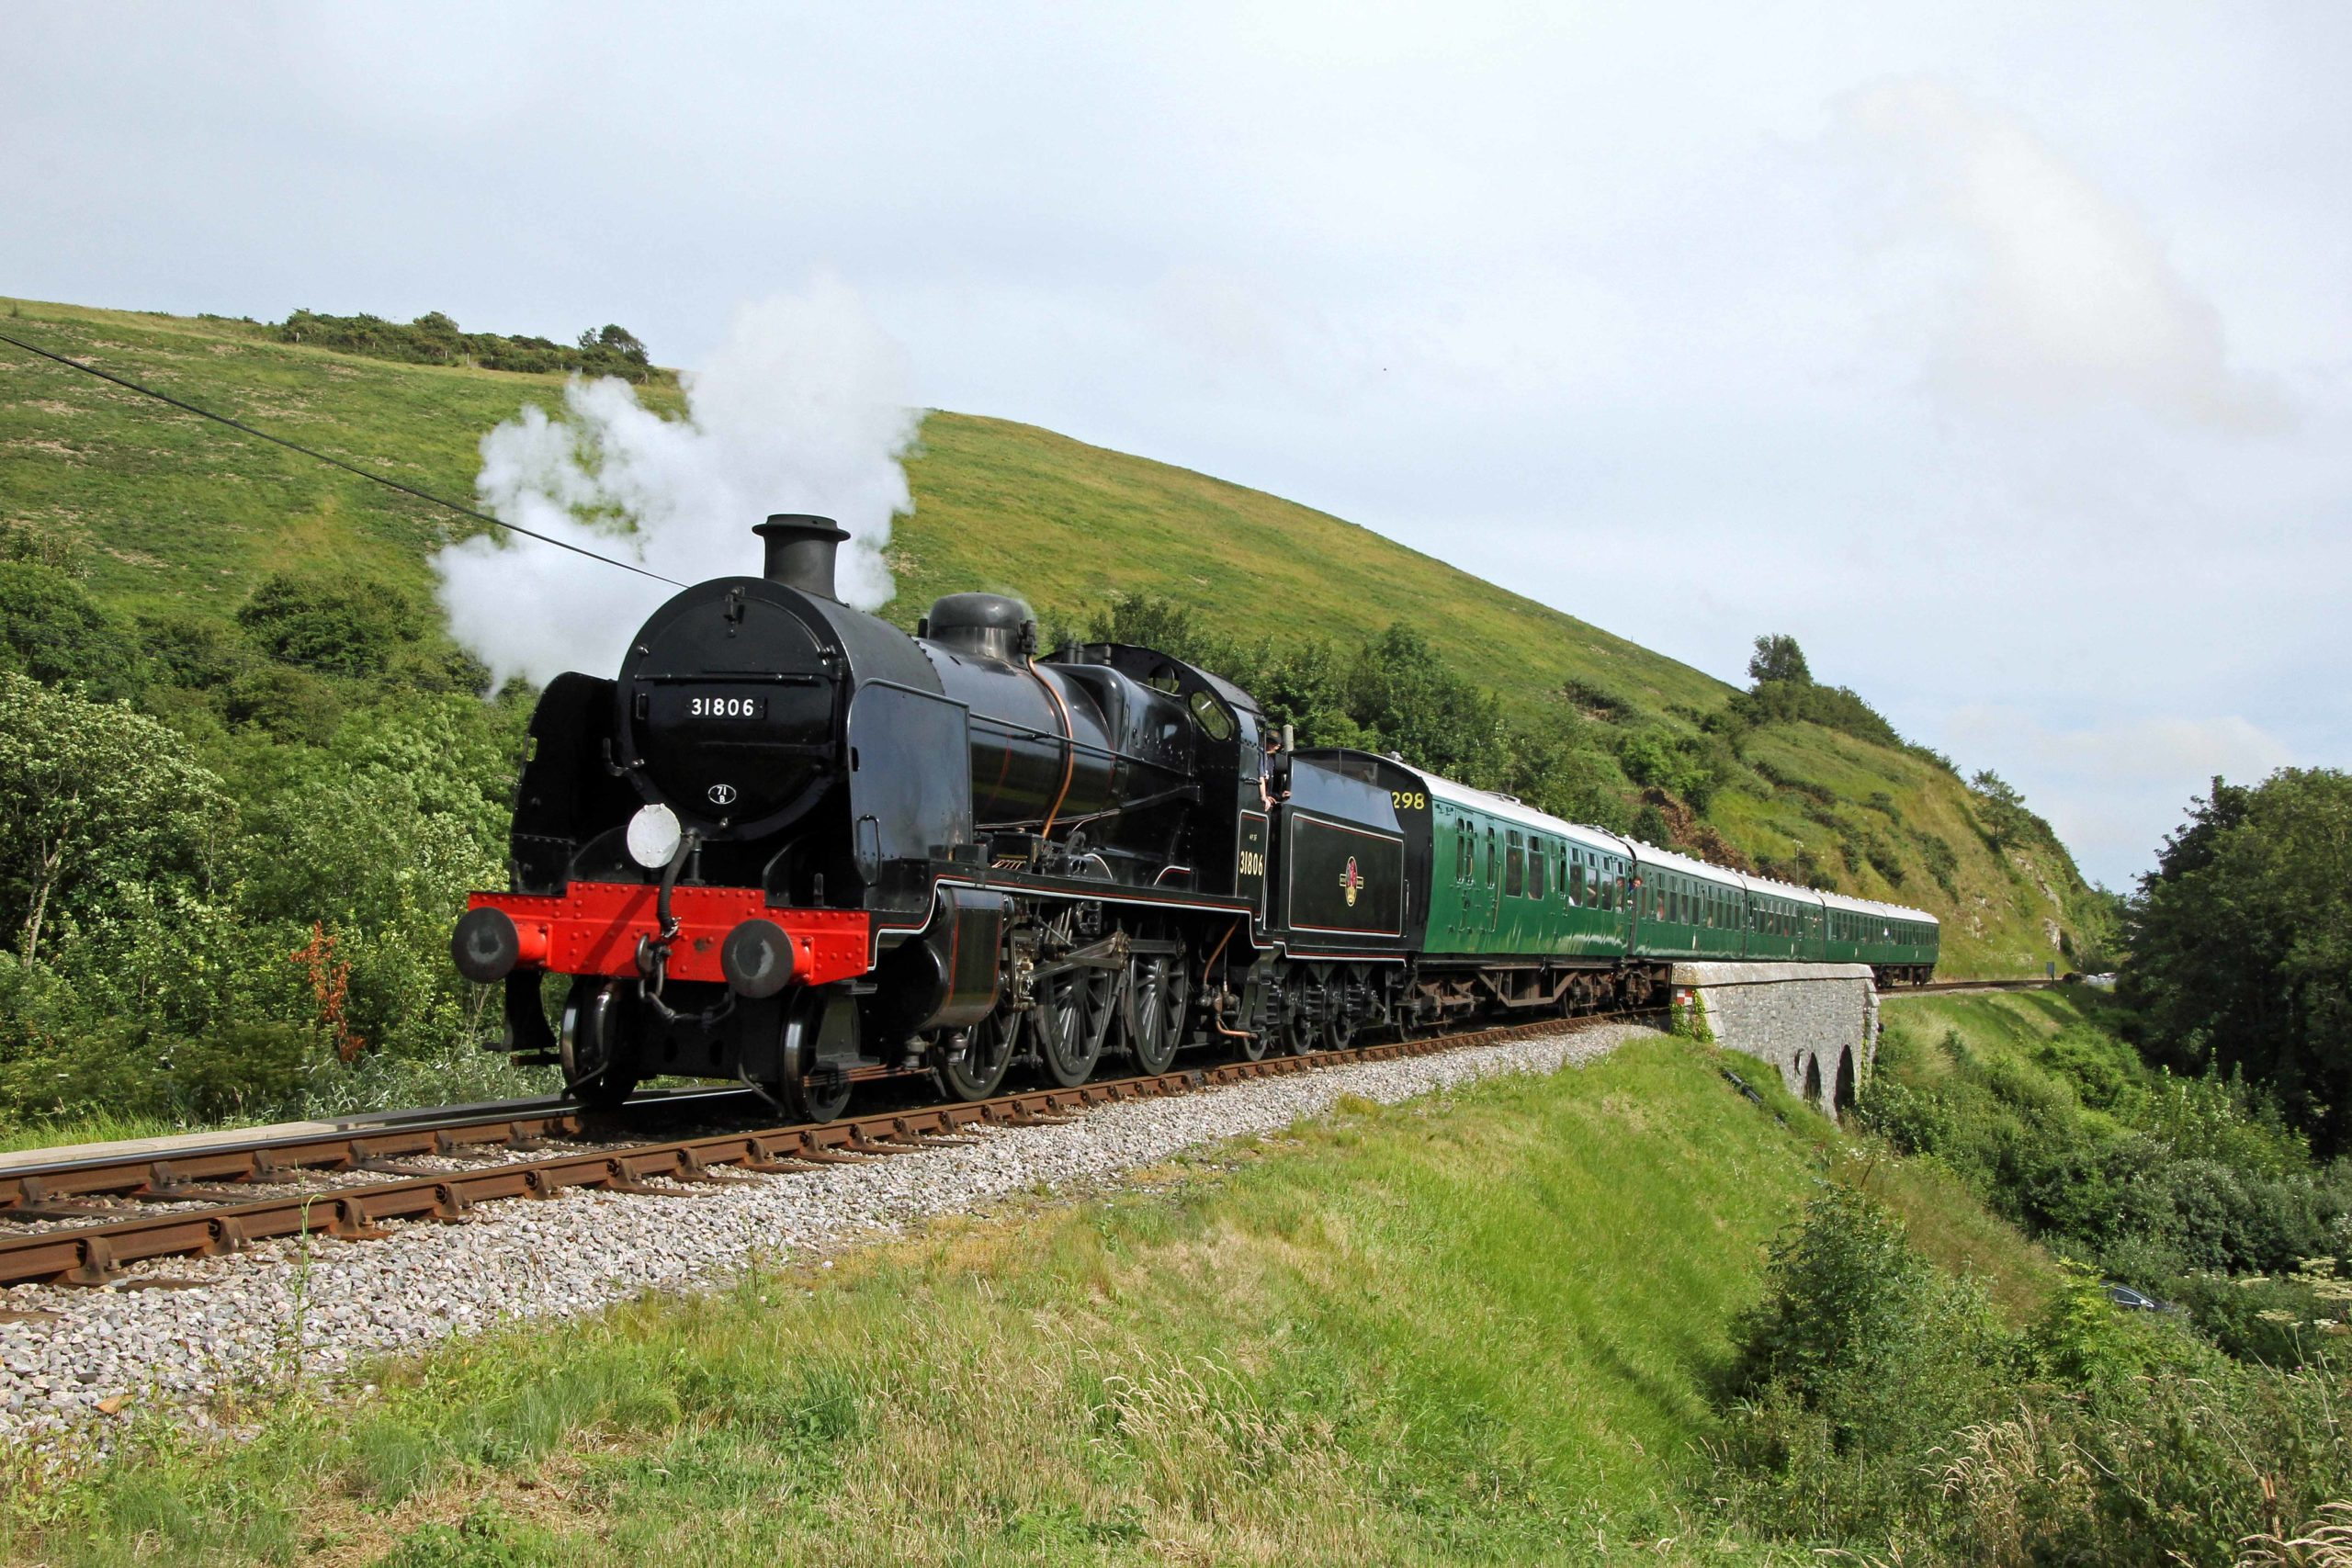 No. 31806 steam train passing through Purbeck Hills